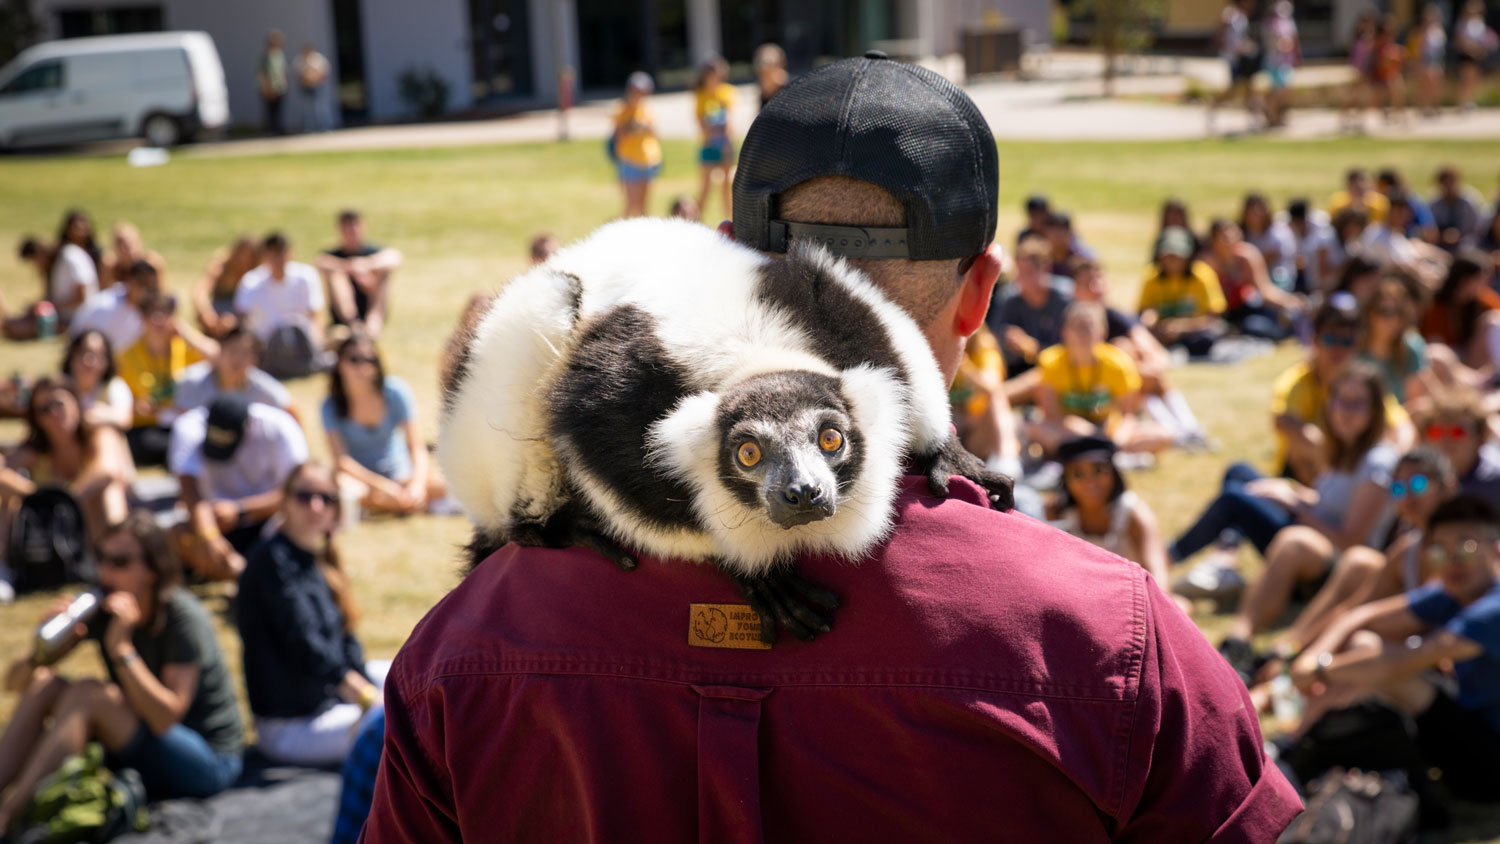 A lemur looks over the shoulder of its handler at a Cal Poly WOW event.